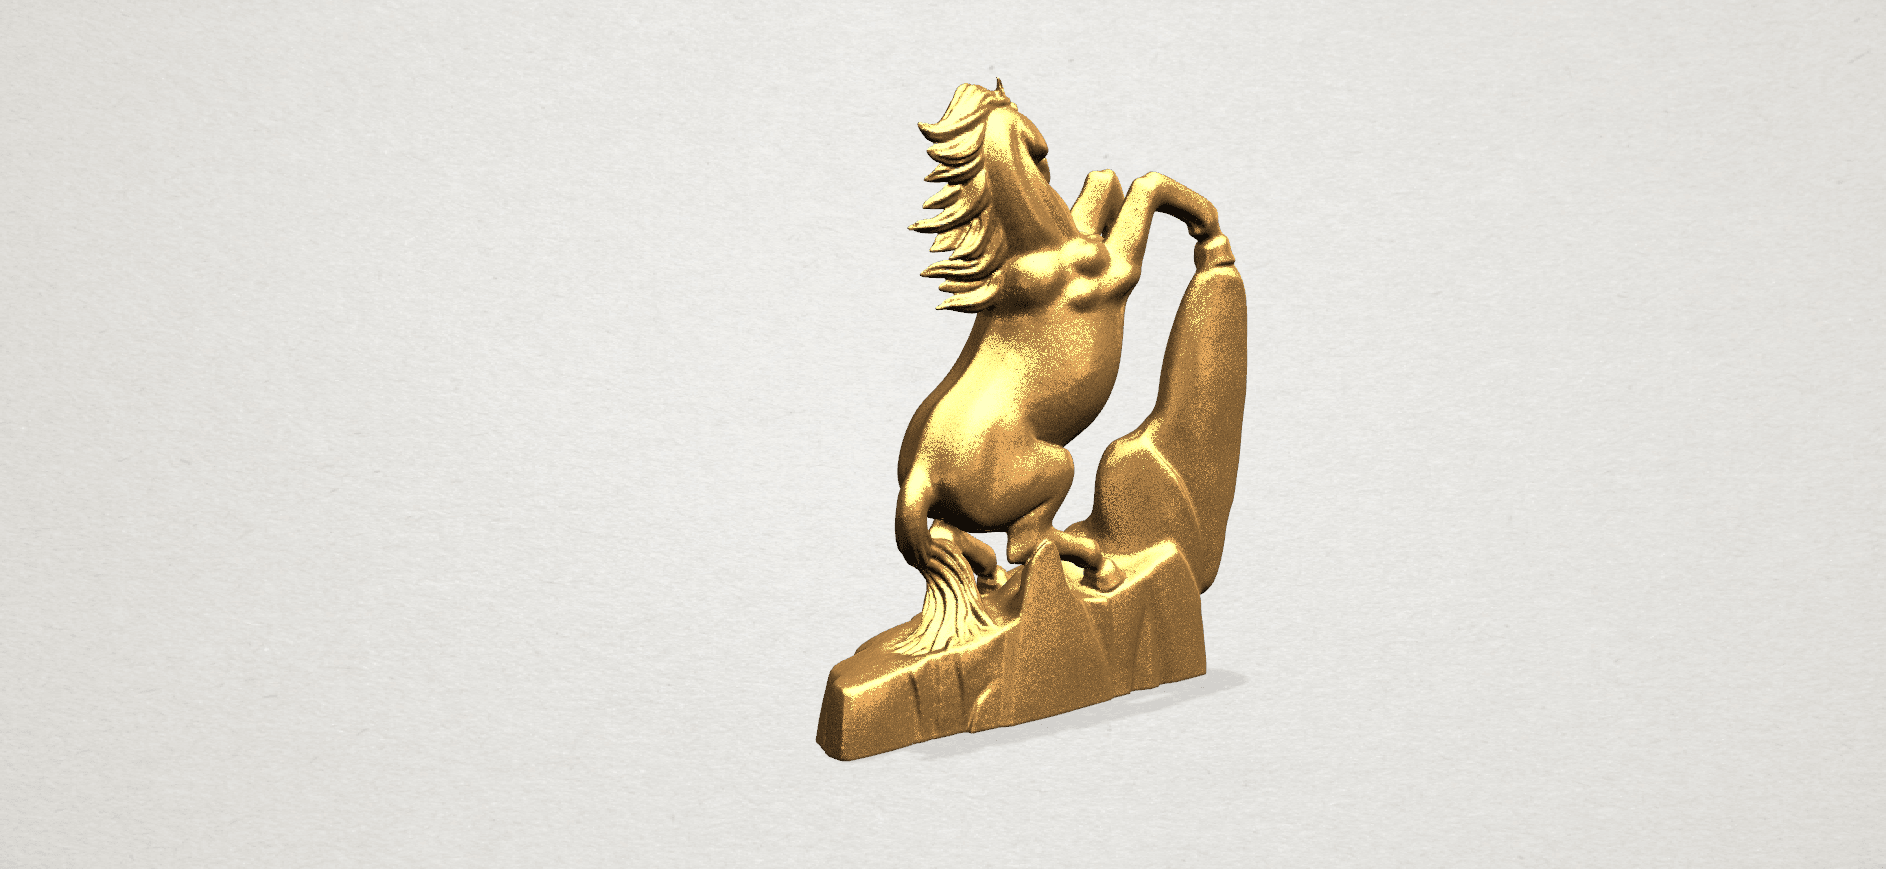 Horse - B04.png Download free STL file Horse 01 • 3D printing model, GeorgesNikkei